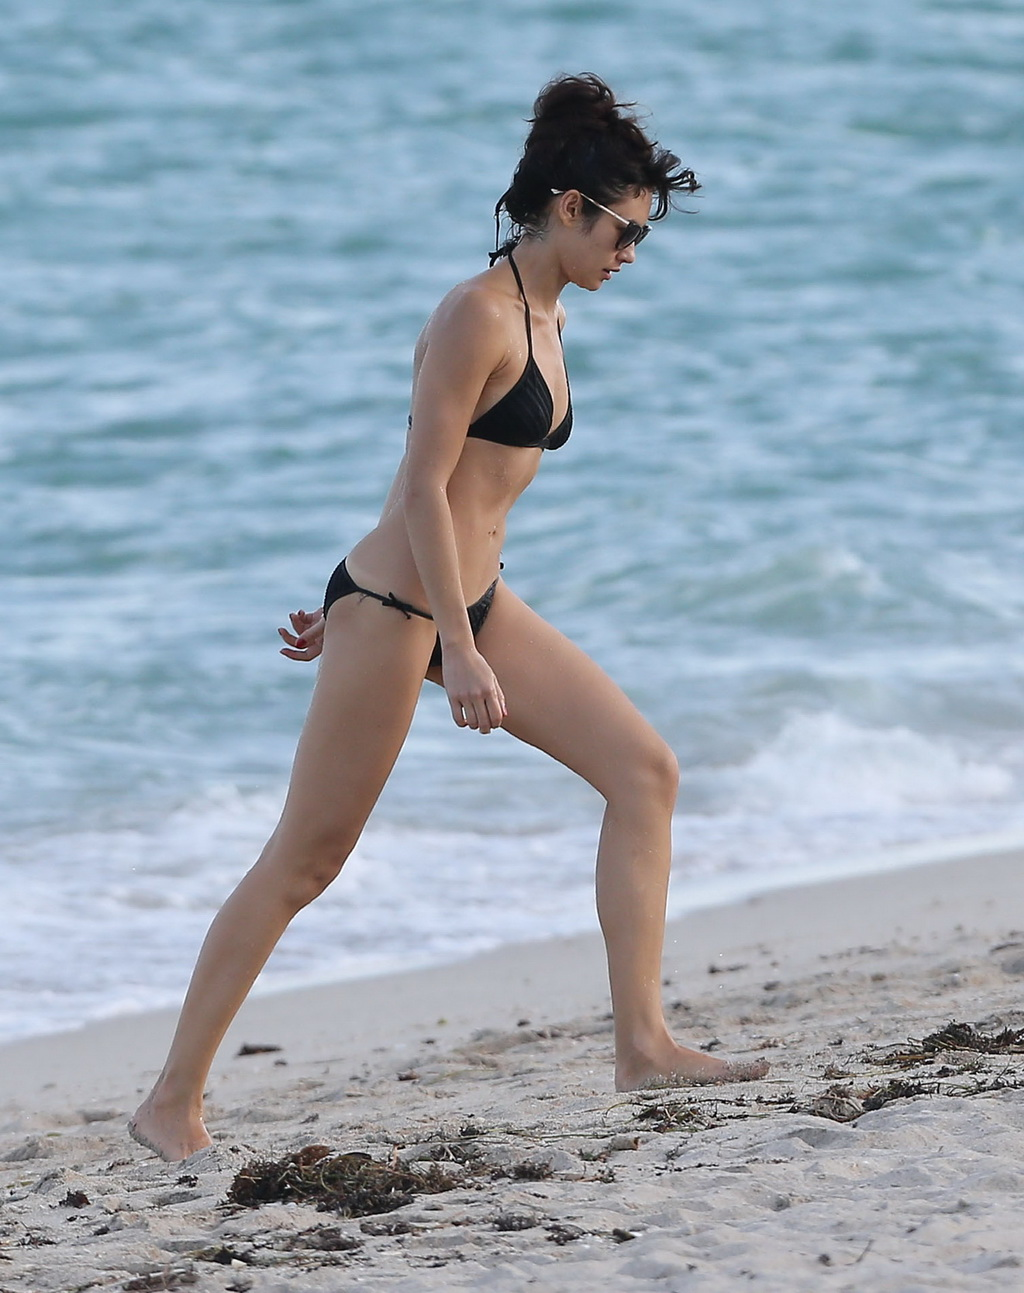 shows off her hot body wearing wet black bikini at the beach in miami